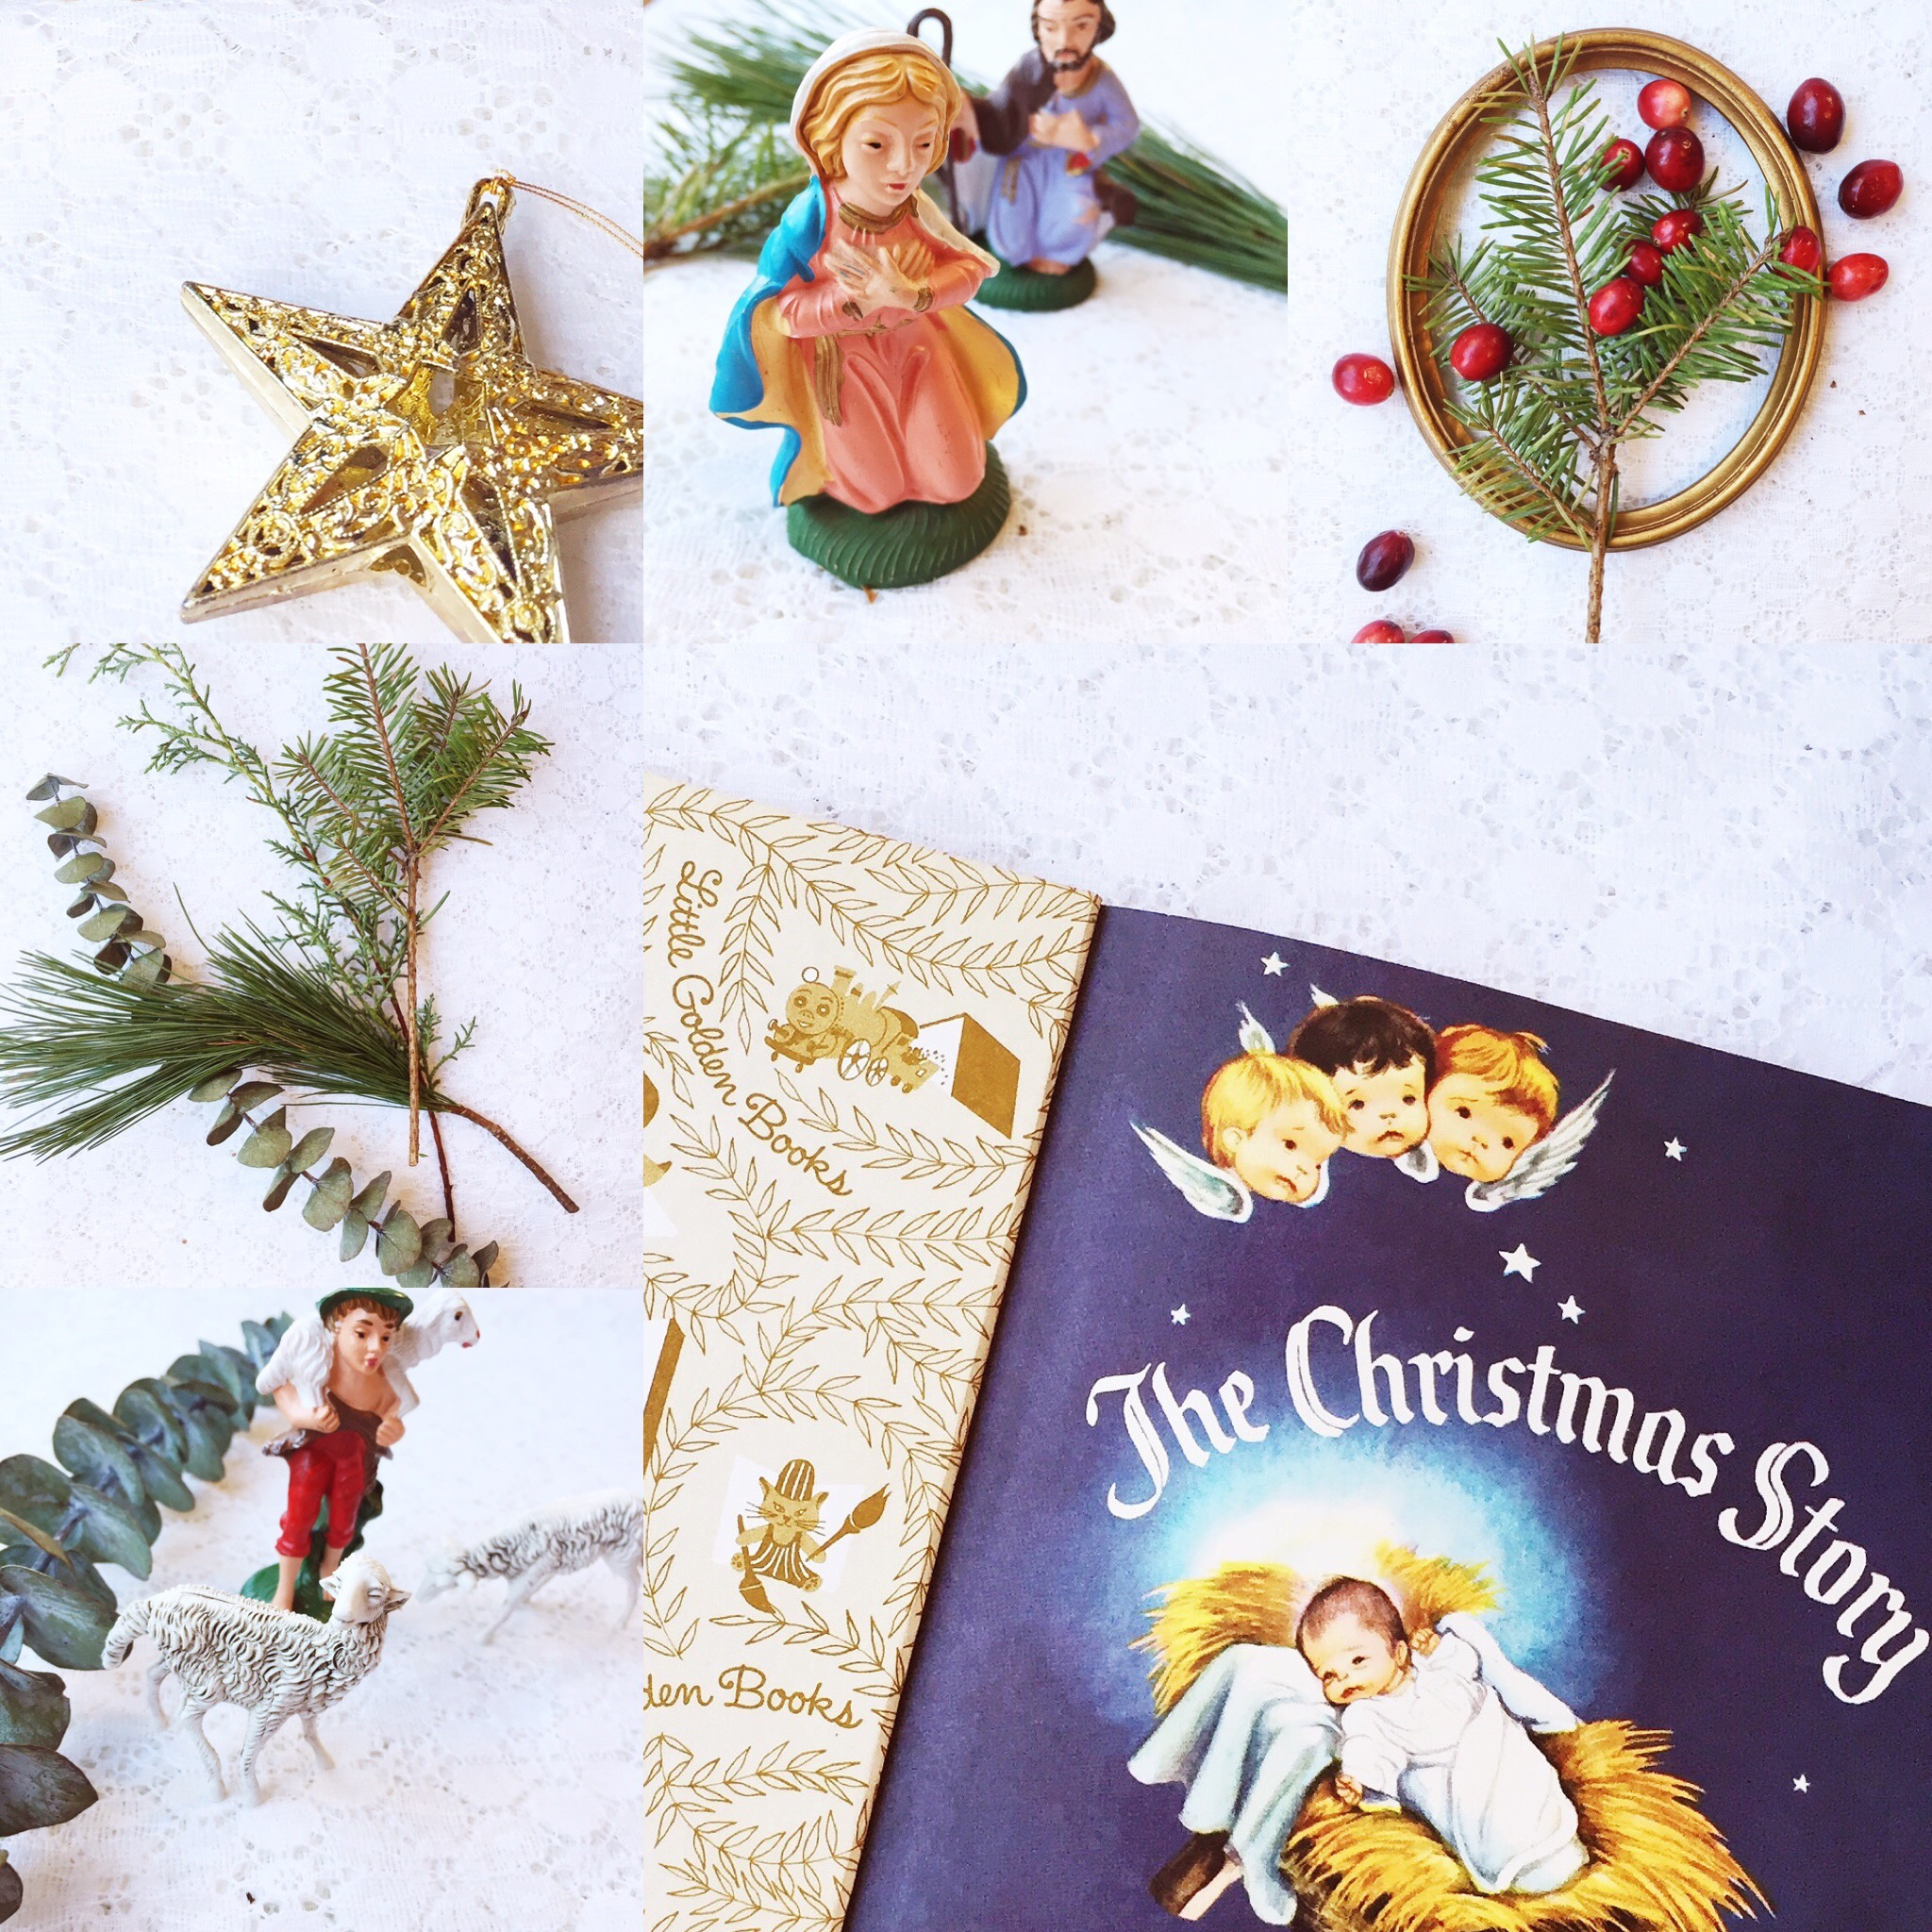 Weekly Color Inspiration: The Christmas Story - Vintage Nativity and Advent